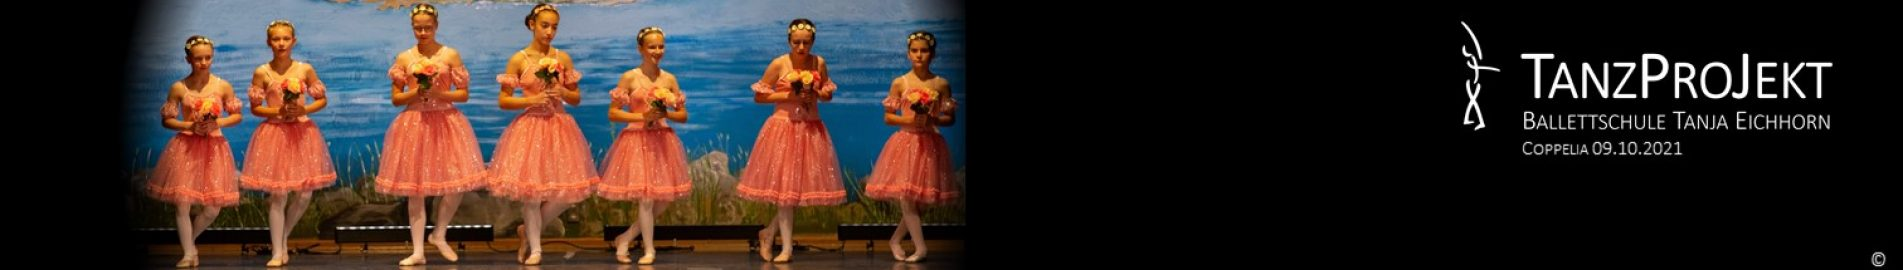 cropped-Coppelia-Banner048.jpg